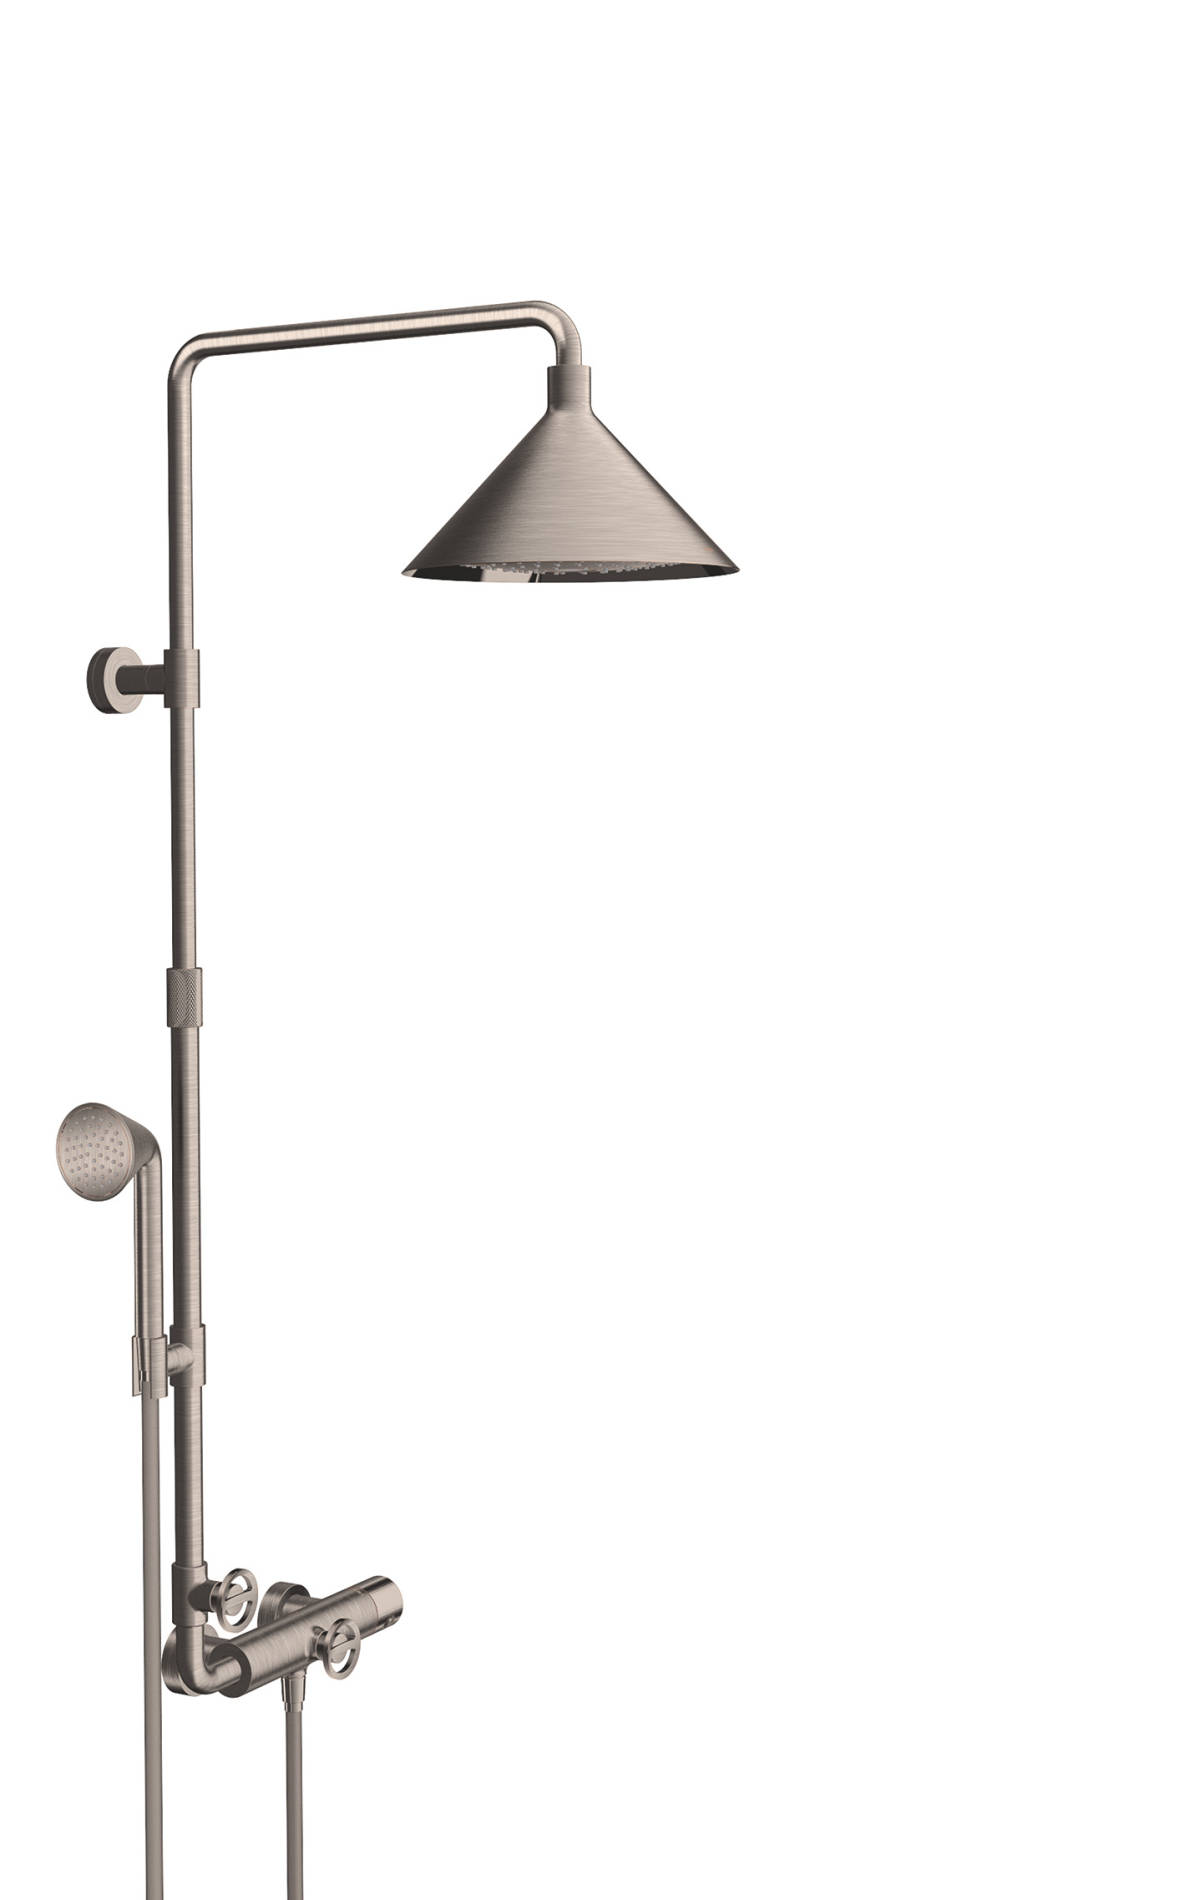 Showerpipe with thermostat and overhead shower 240 2jet, Stainless Steel Optic, 26020800